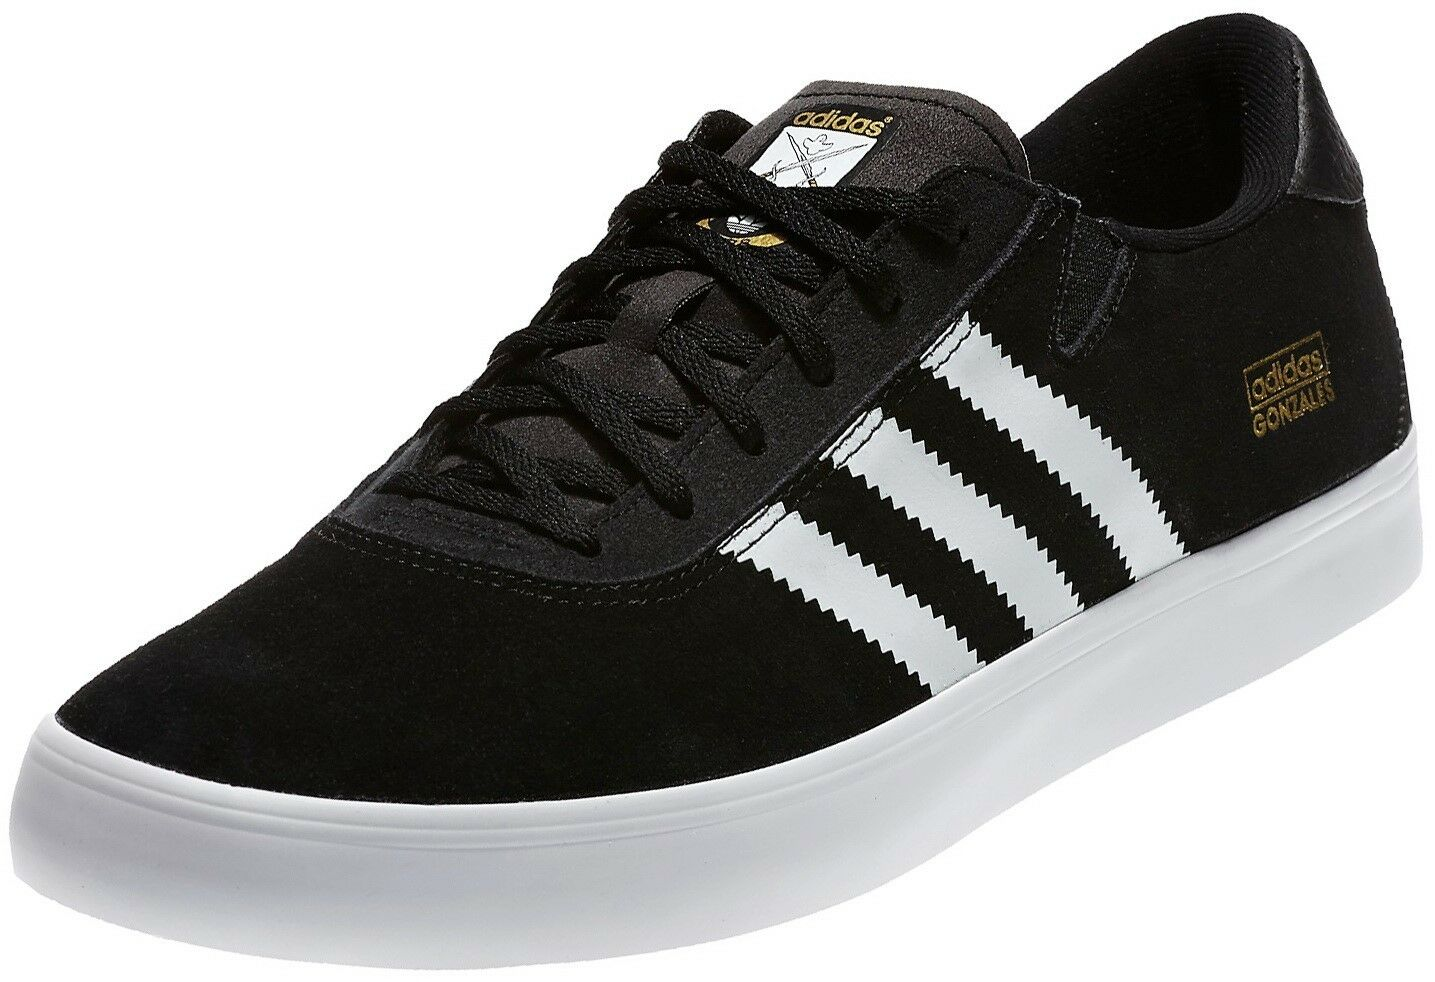 ADIDAS ORIGINALS GONZALES GONZ PROS Homme TRAINERS SKATE ChaussuresTaille 6 - 13